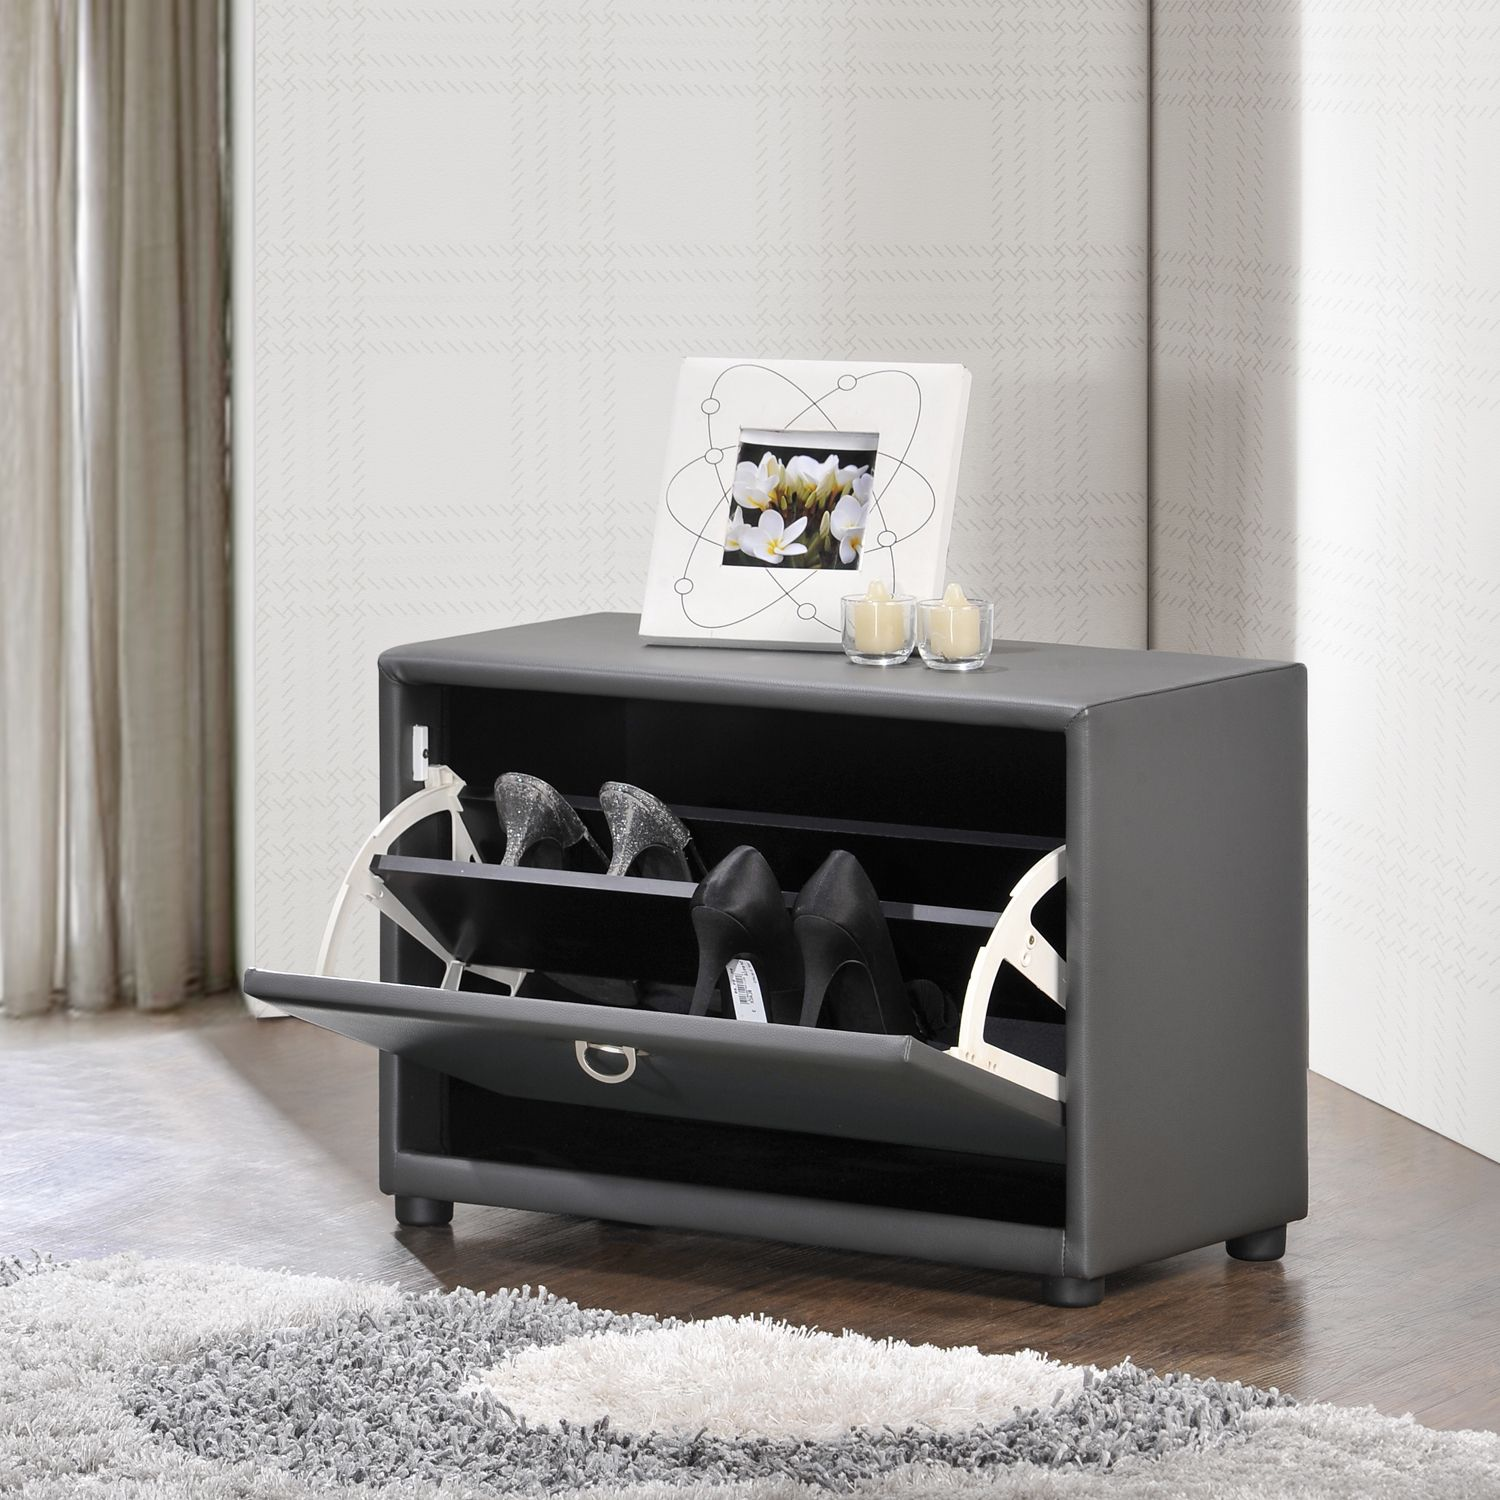 Baxton Studio Petito Contemporary 1-tier Grey Faux Leather Upholstered Shoe Cabinet